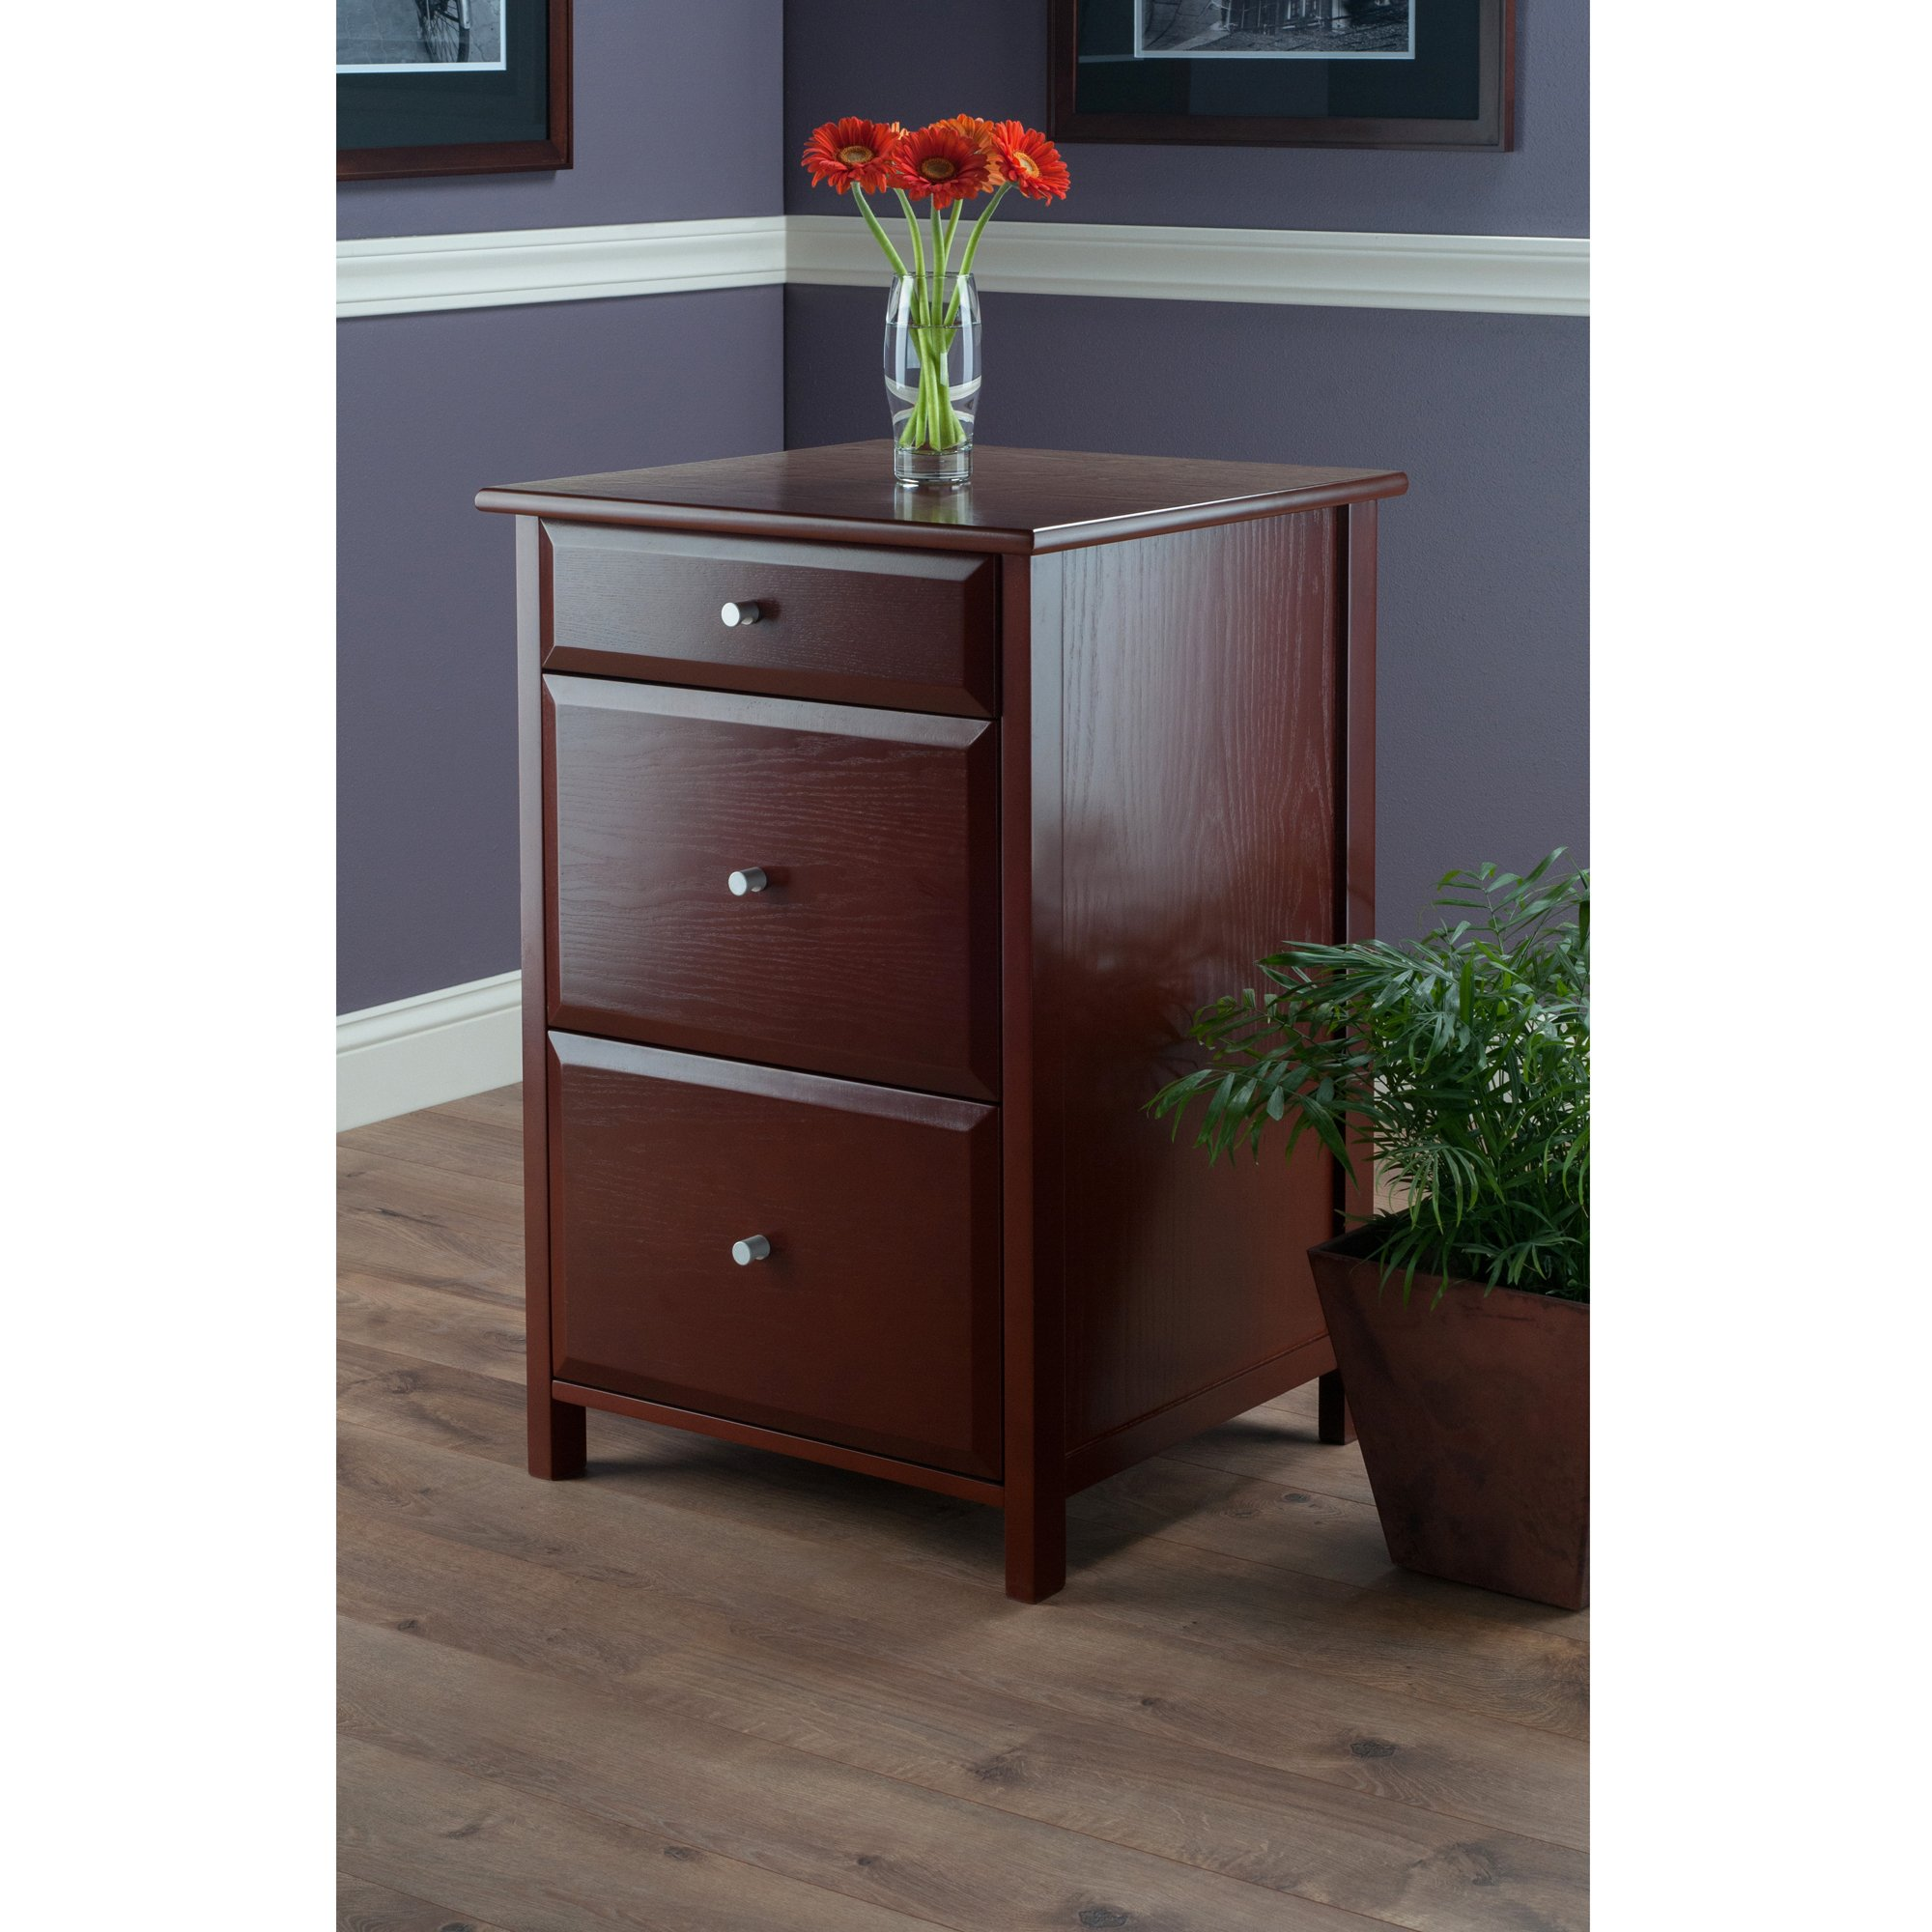 Winsome Wood 94321-WW Delta Home Office, Walnut by Winsome Wood (Image #5)